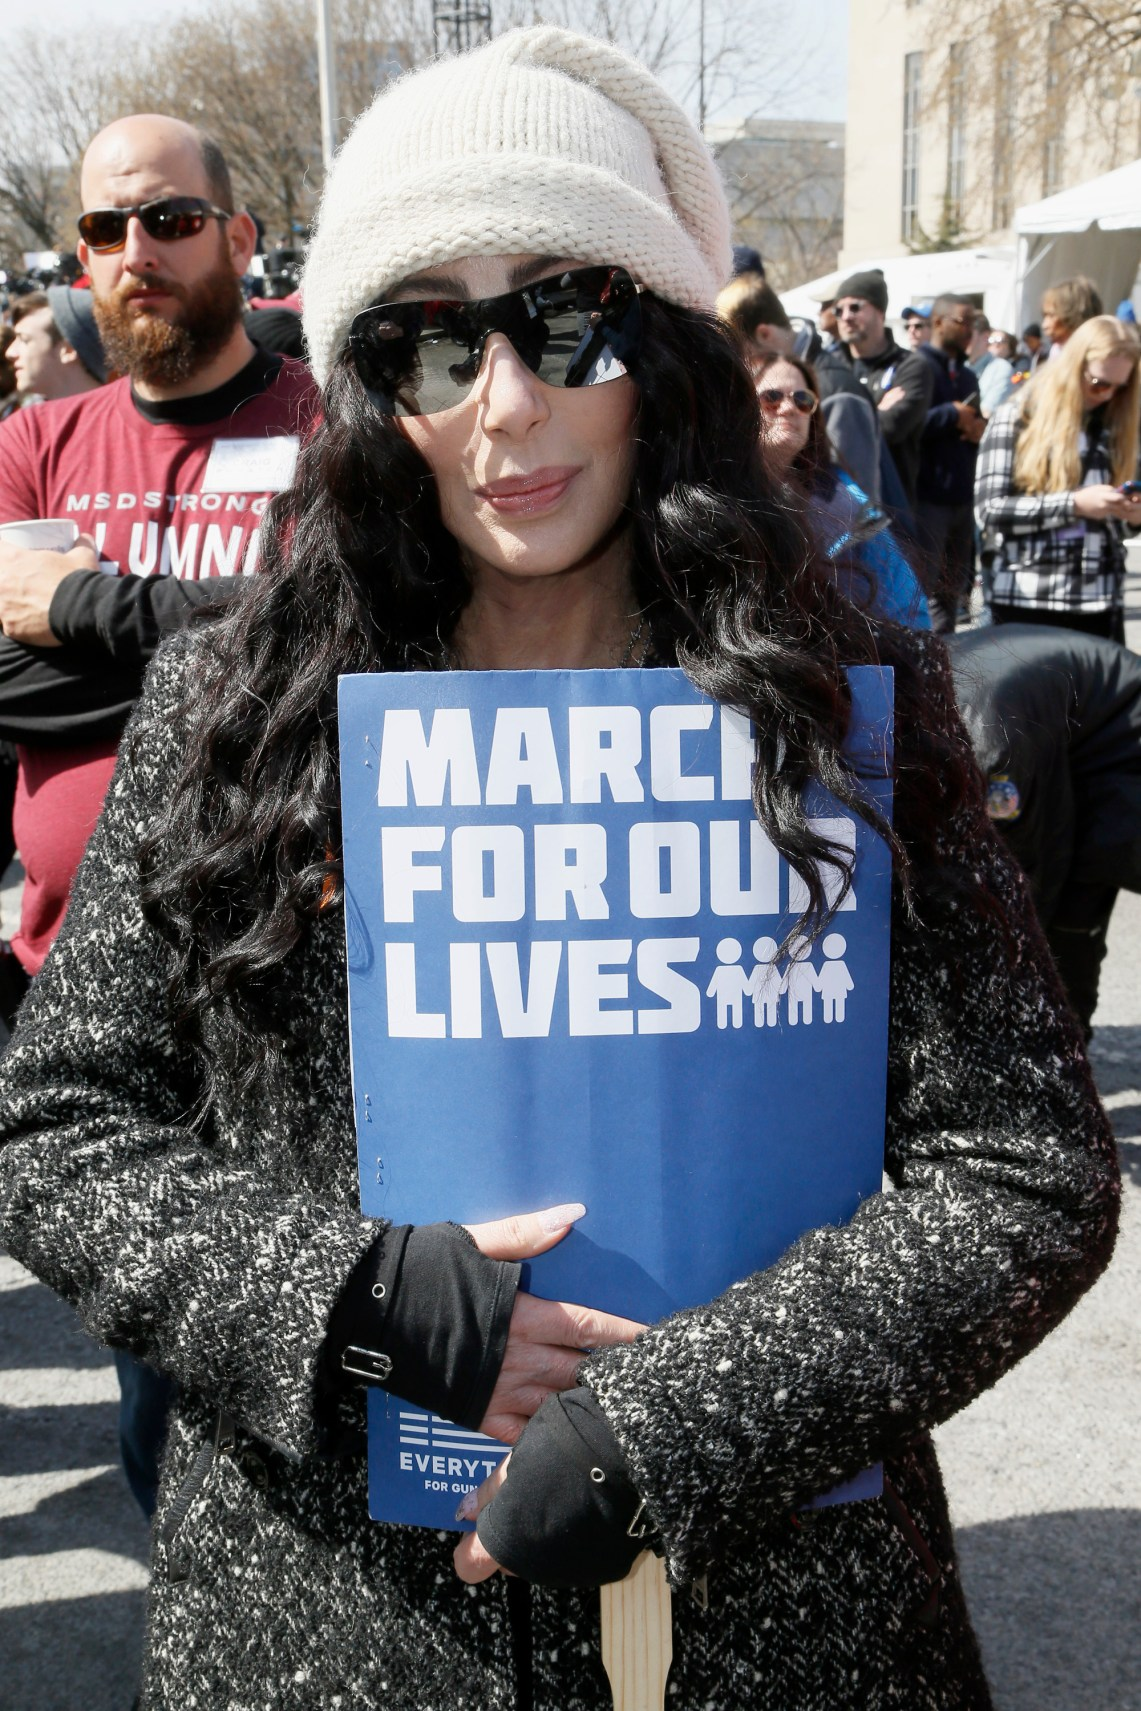 WASHINGTON, DC - MARCH 24: Cher attends March For Our Lives on March 24, 2018 in Washington, DC. (Photo by Paul Morigi/Getty Images for March For Our Lives)